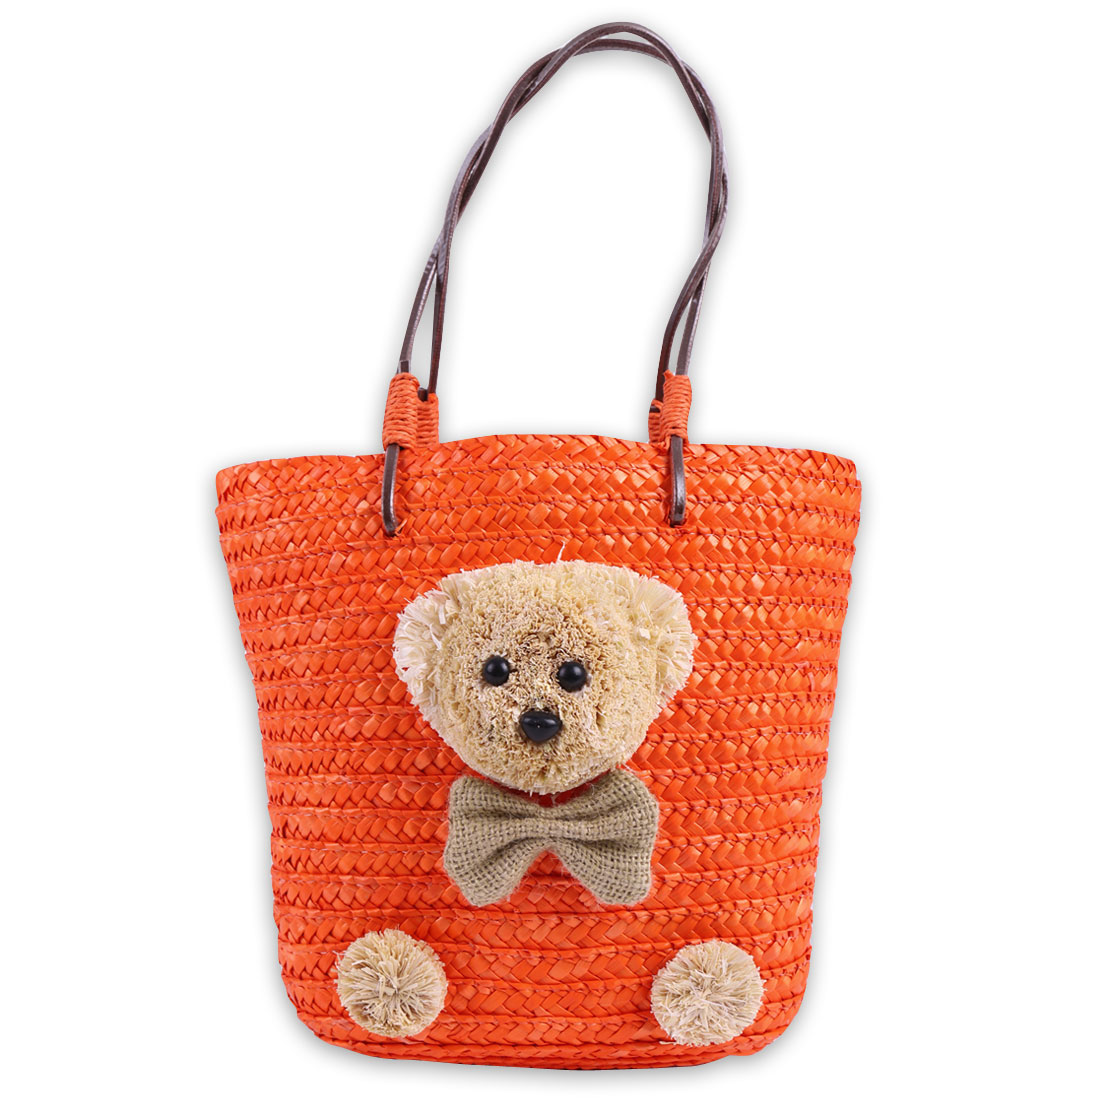 Solid Flower Embellished Lining Straw Handbag for Girls Orange